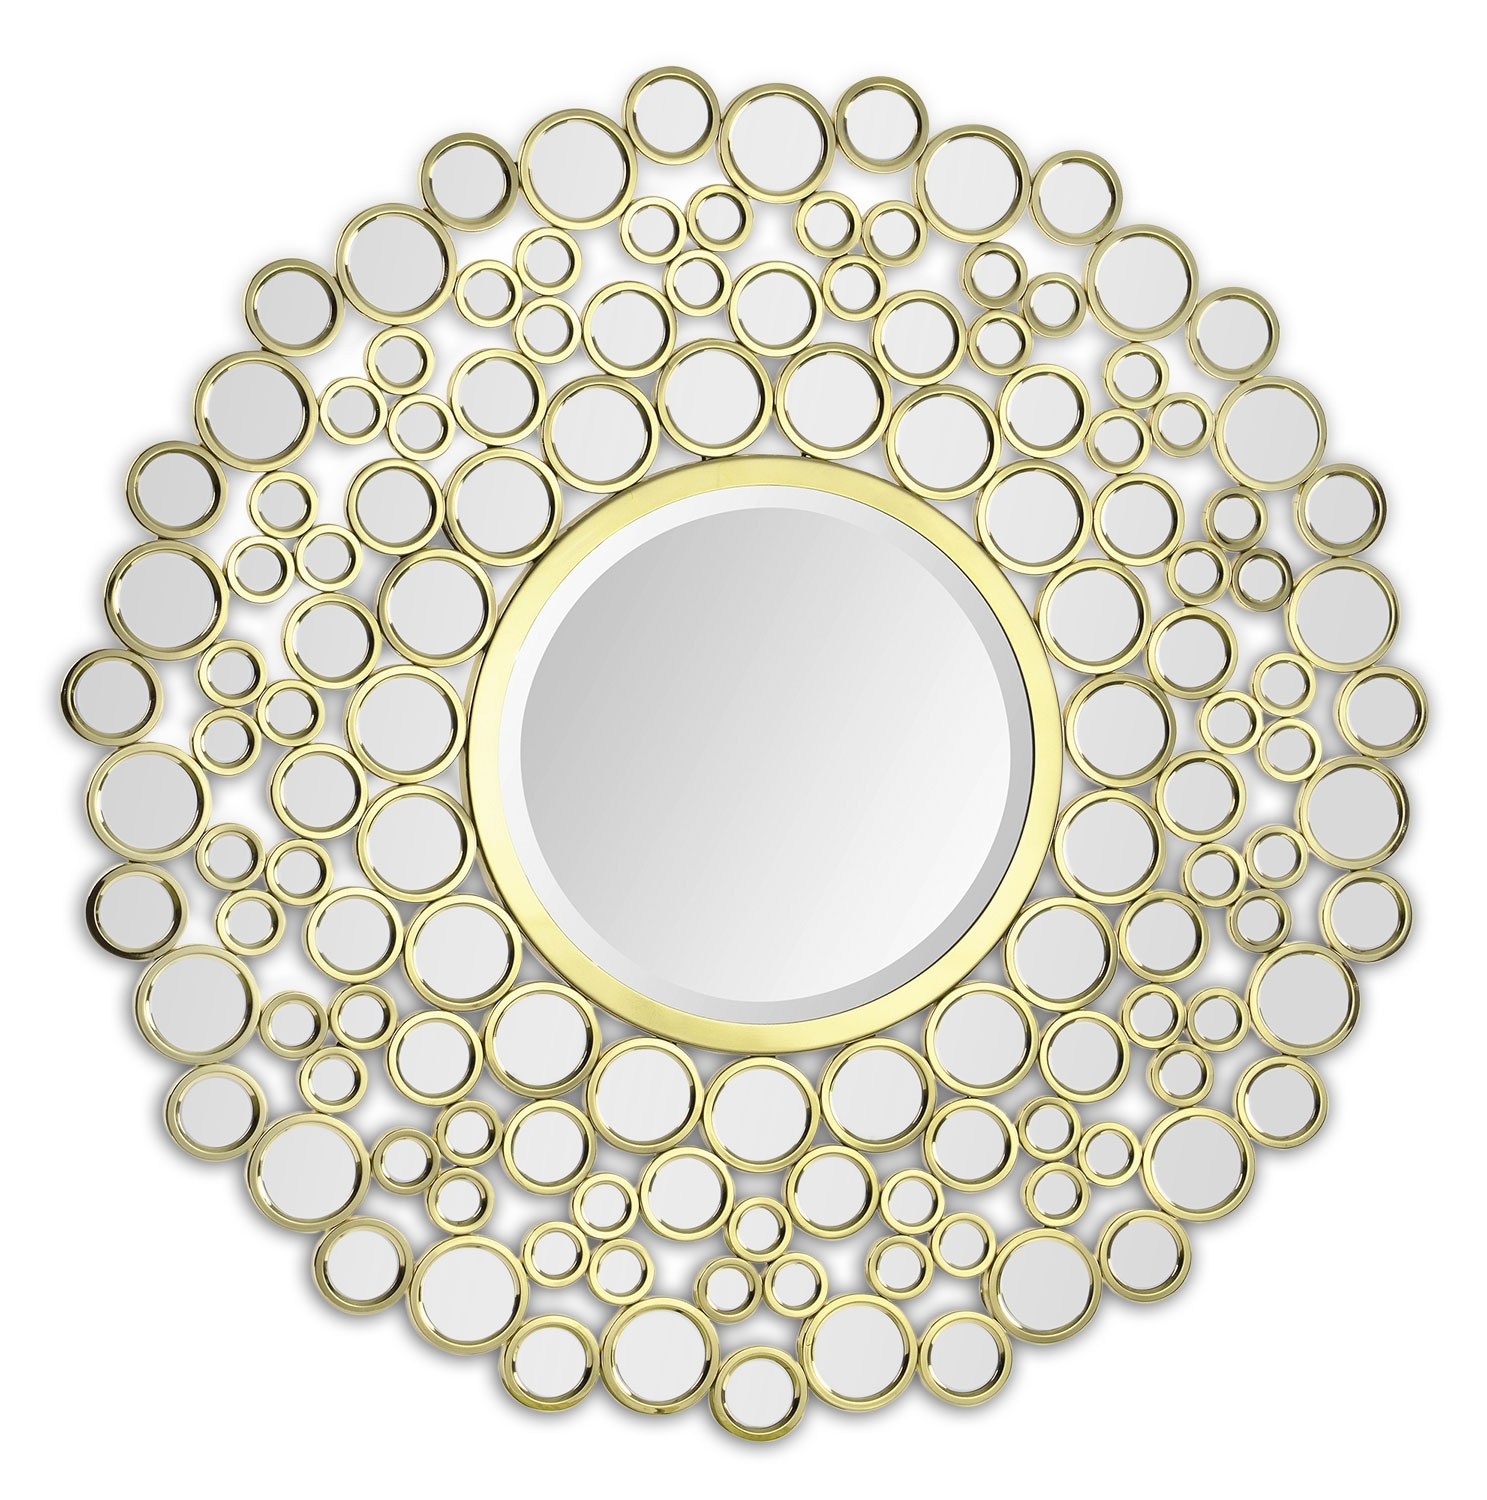 Home Accessories - Celeste I Mirror